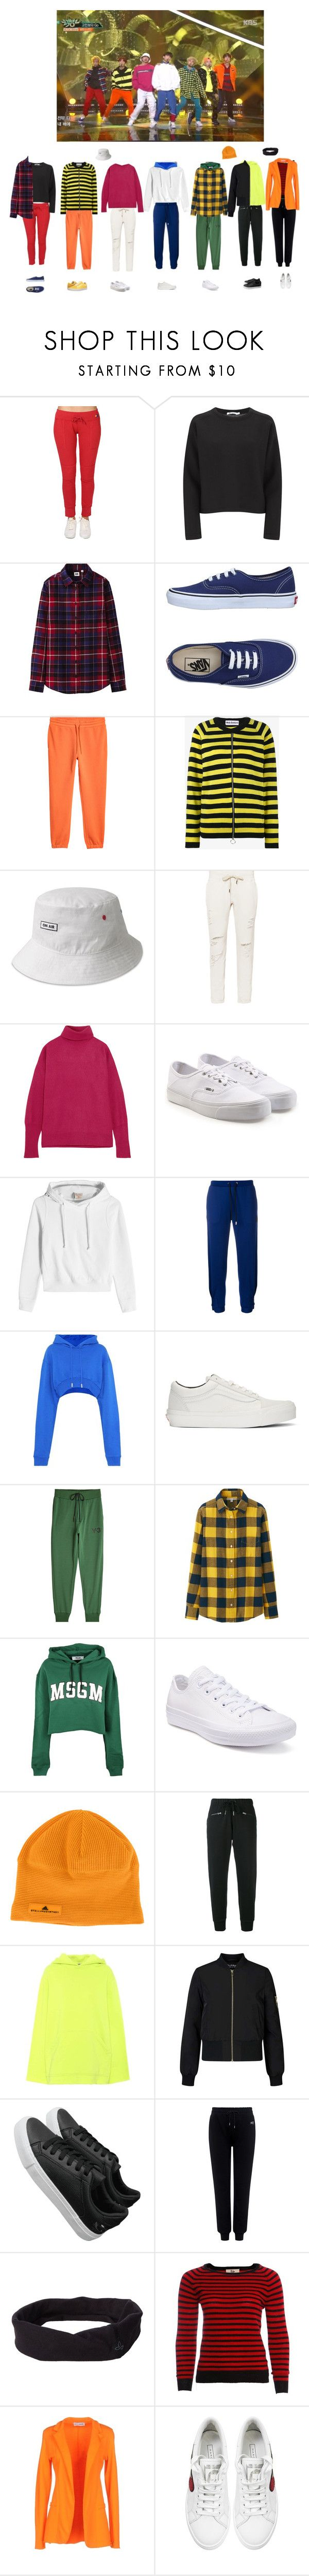 """""""BTS- go go live"""" by mochichimchim ❤ liked on Polyvore featuring T By Alexander Wang, Uniqlo, Vans, Molly Goddard, kangol, NSF, Maison Margiela, Vetements, Versus and Off-White"""